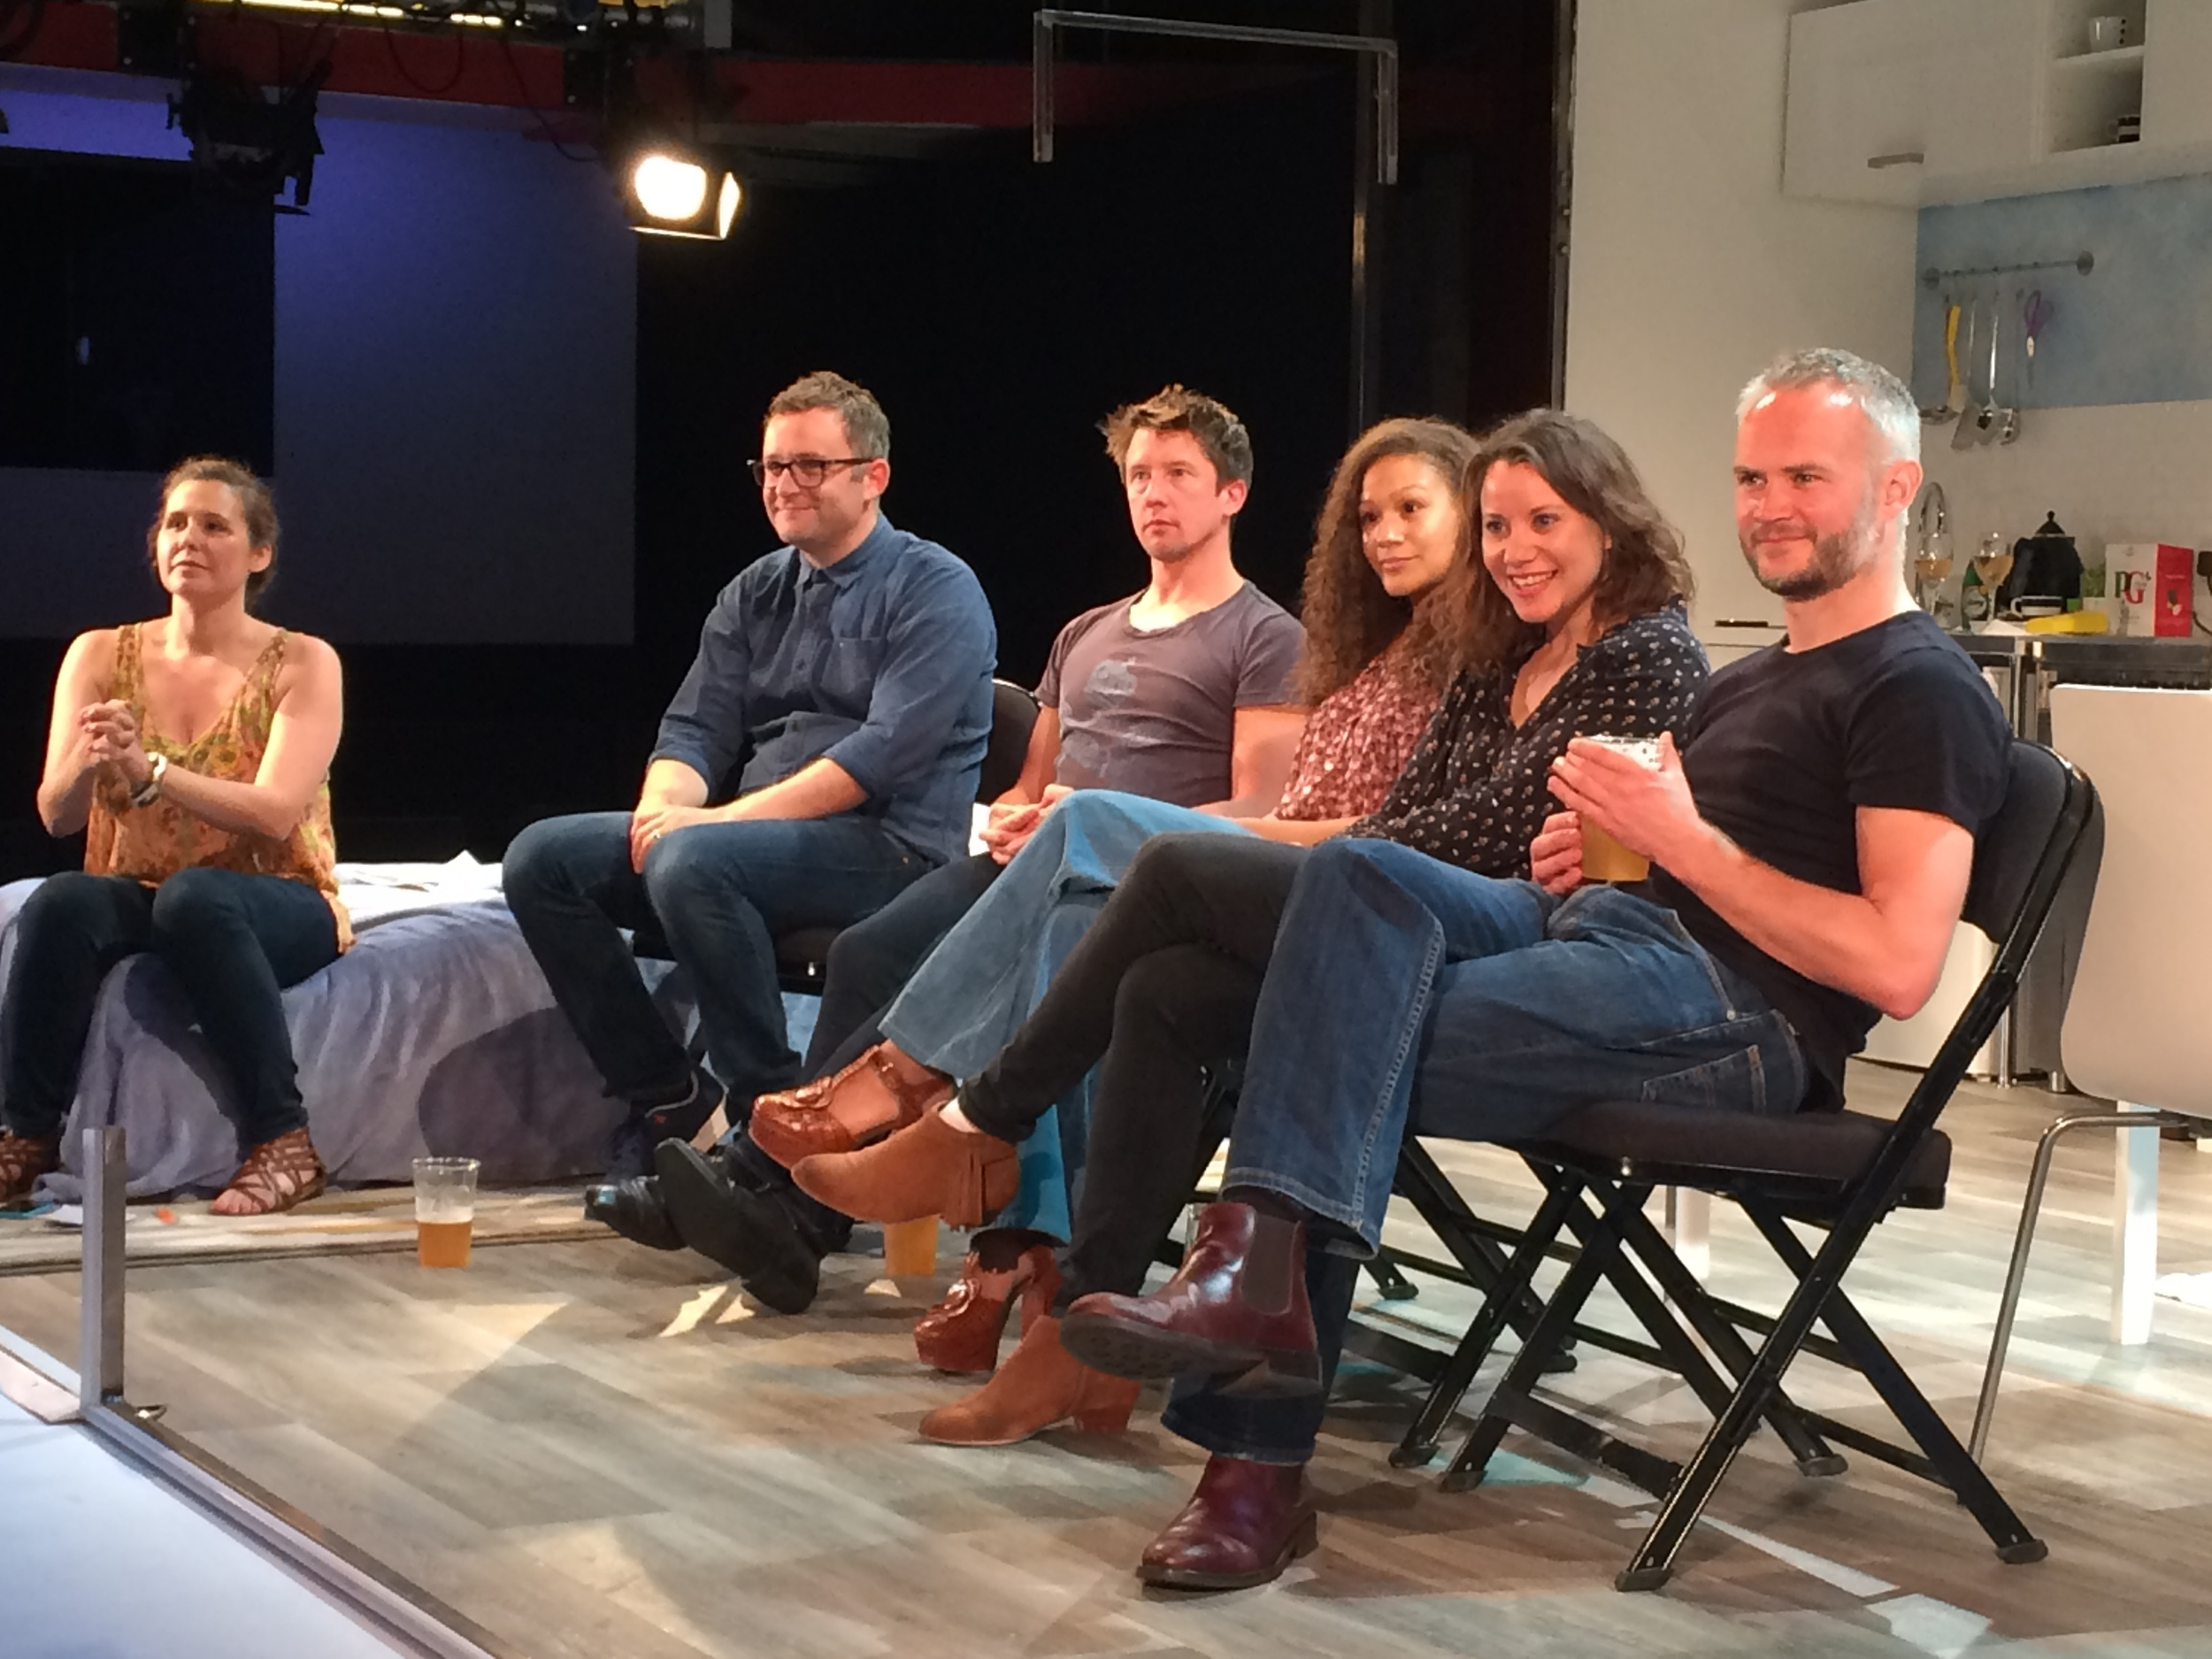 Discussion with cast, writer and producer after the show